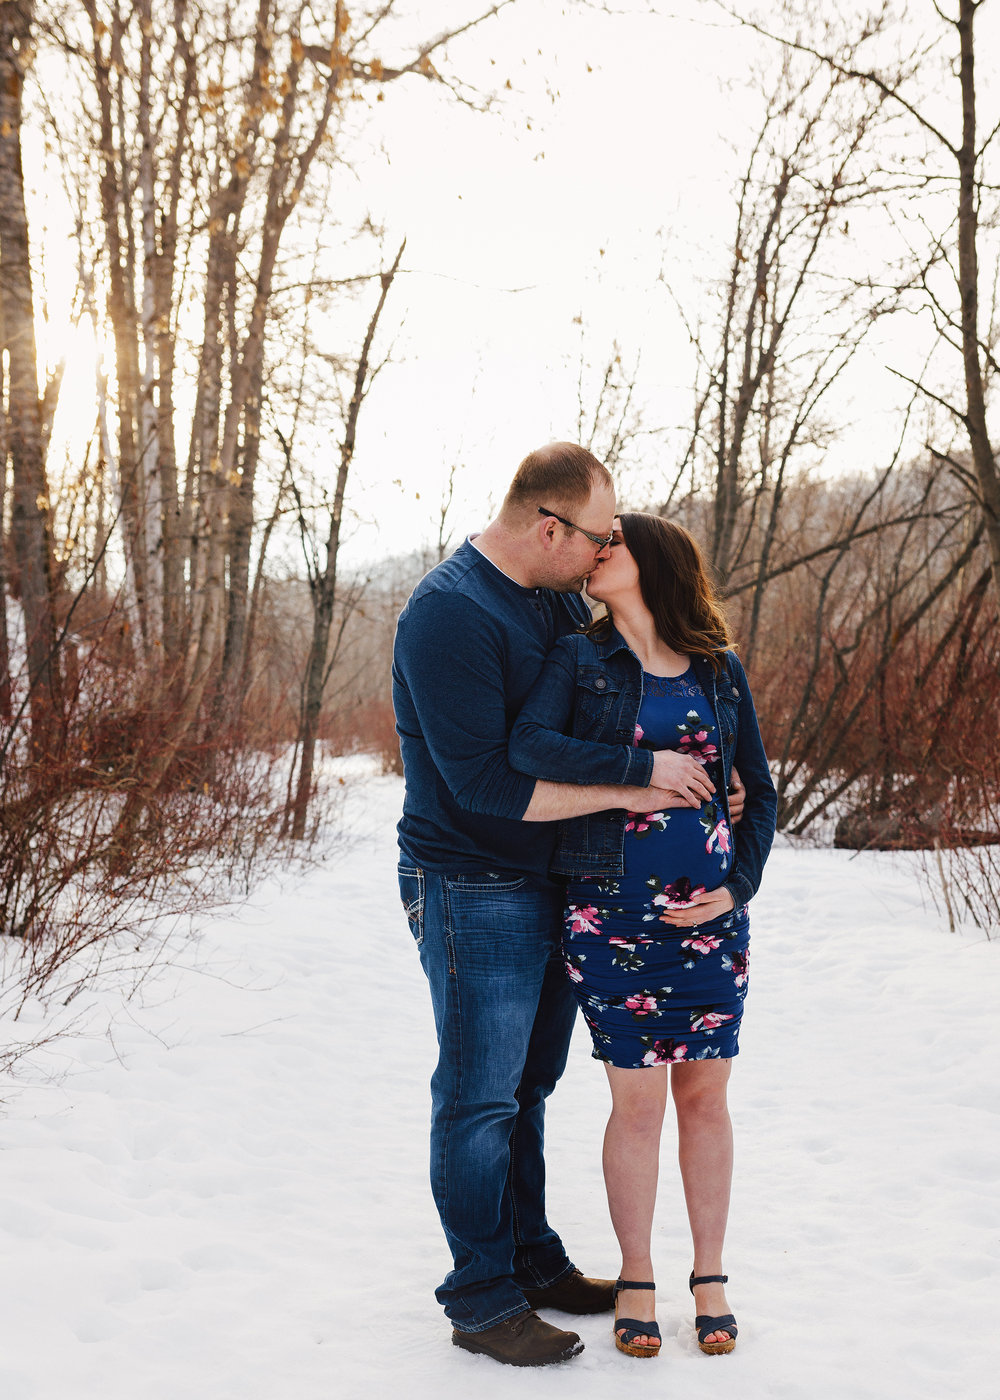 Edmonton Maternity Photographer_Brittany Sneak Peek 11.jpg